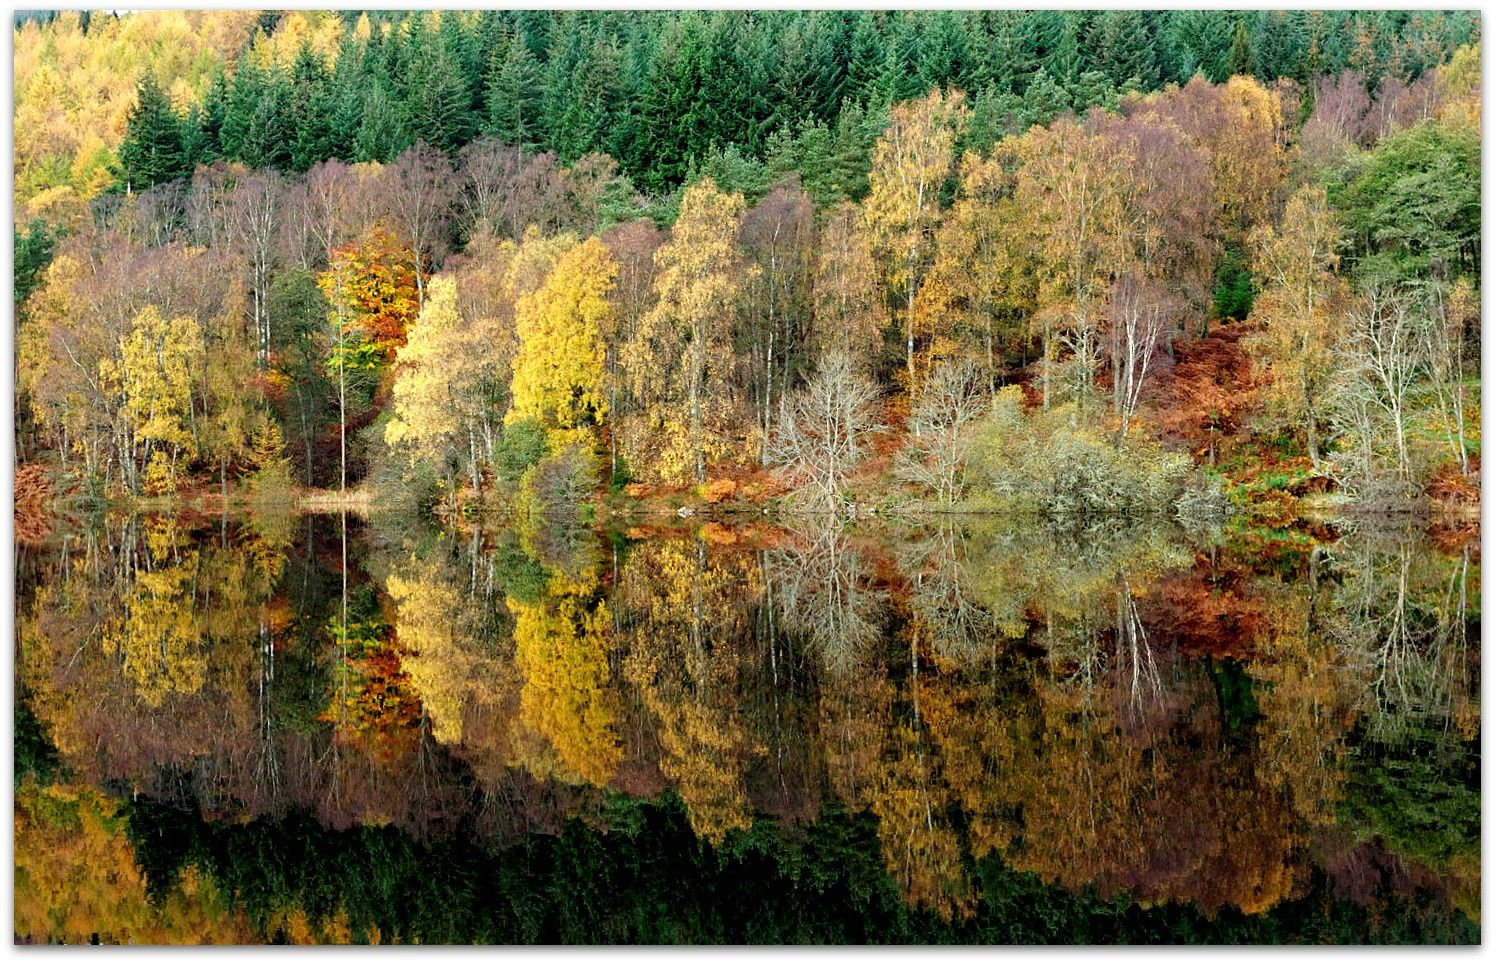 Reflections by eric niven on 500px Loch Tummel, Scotland